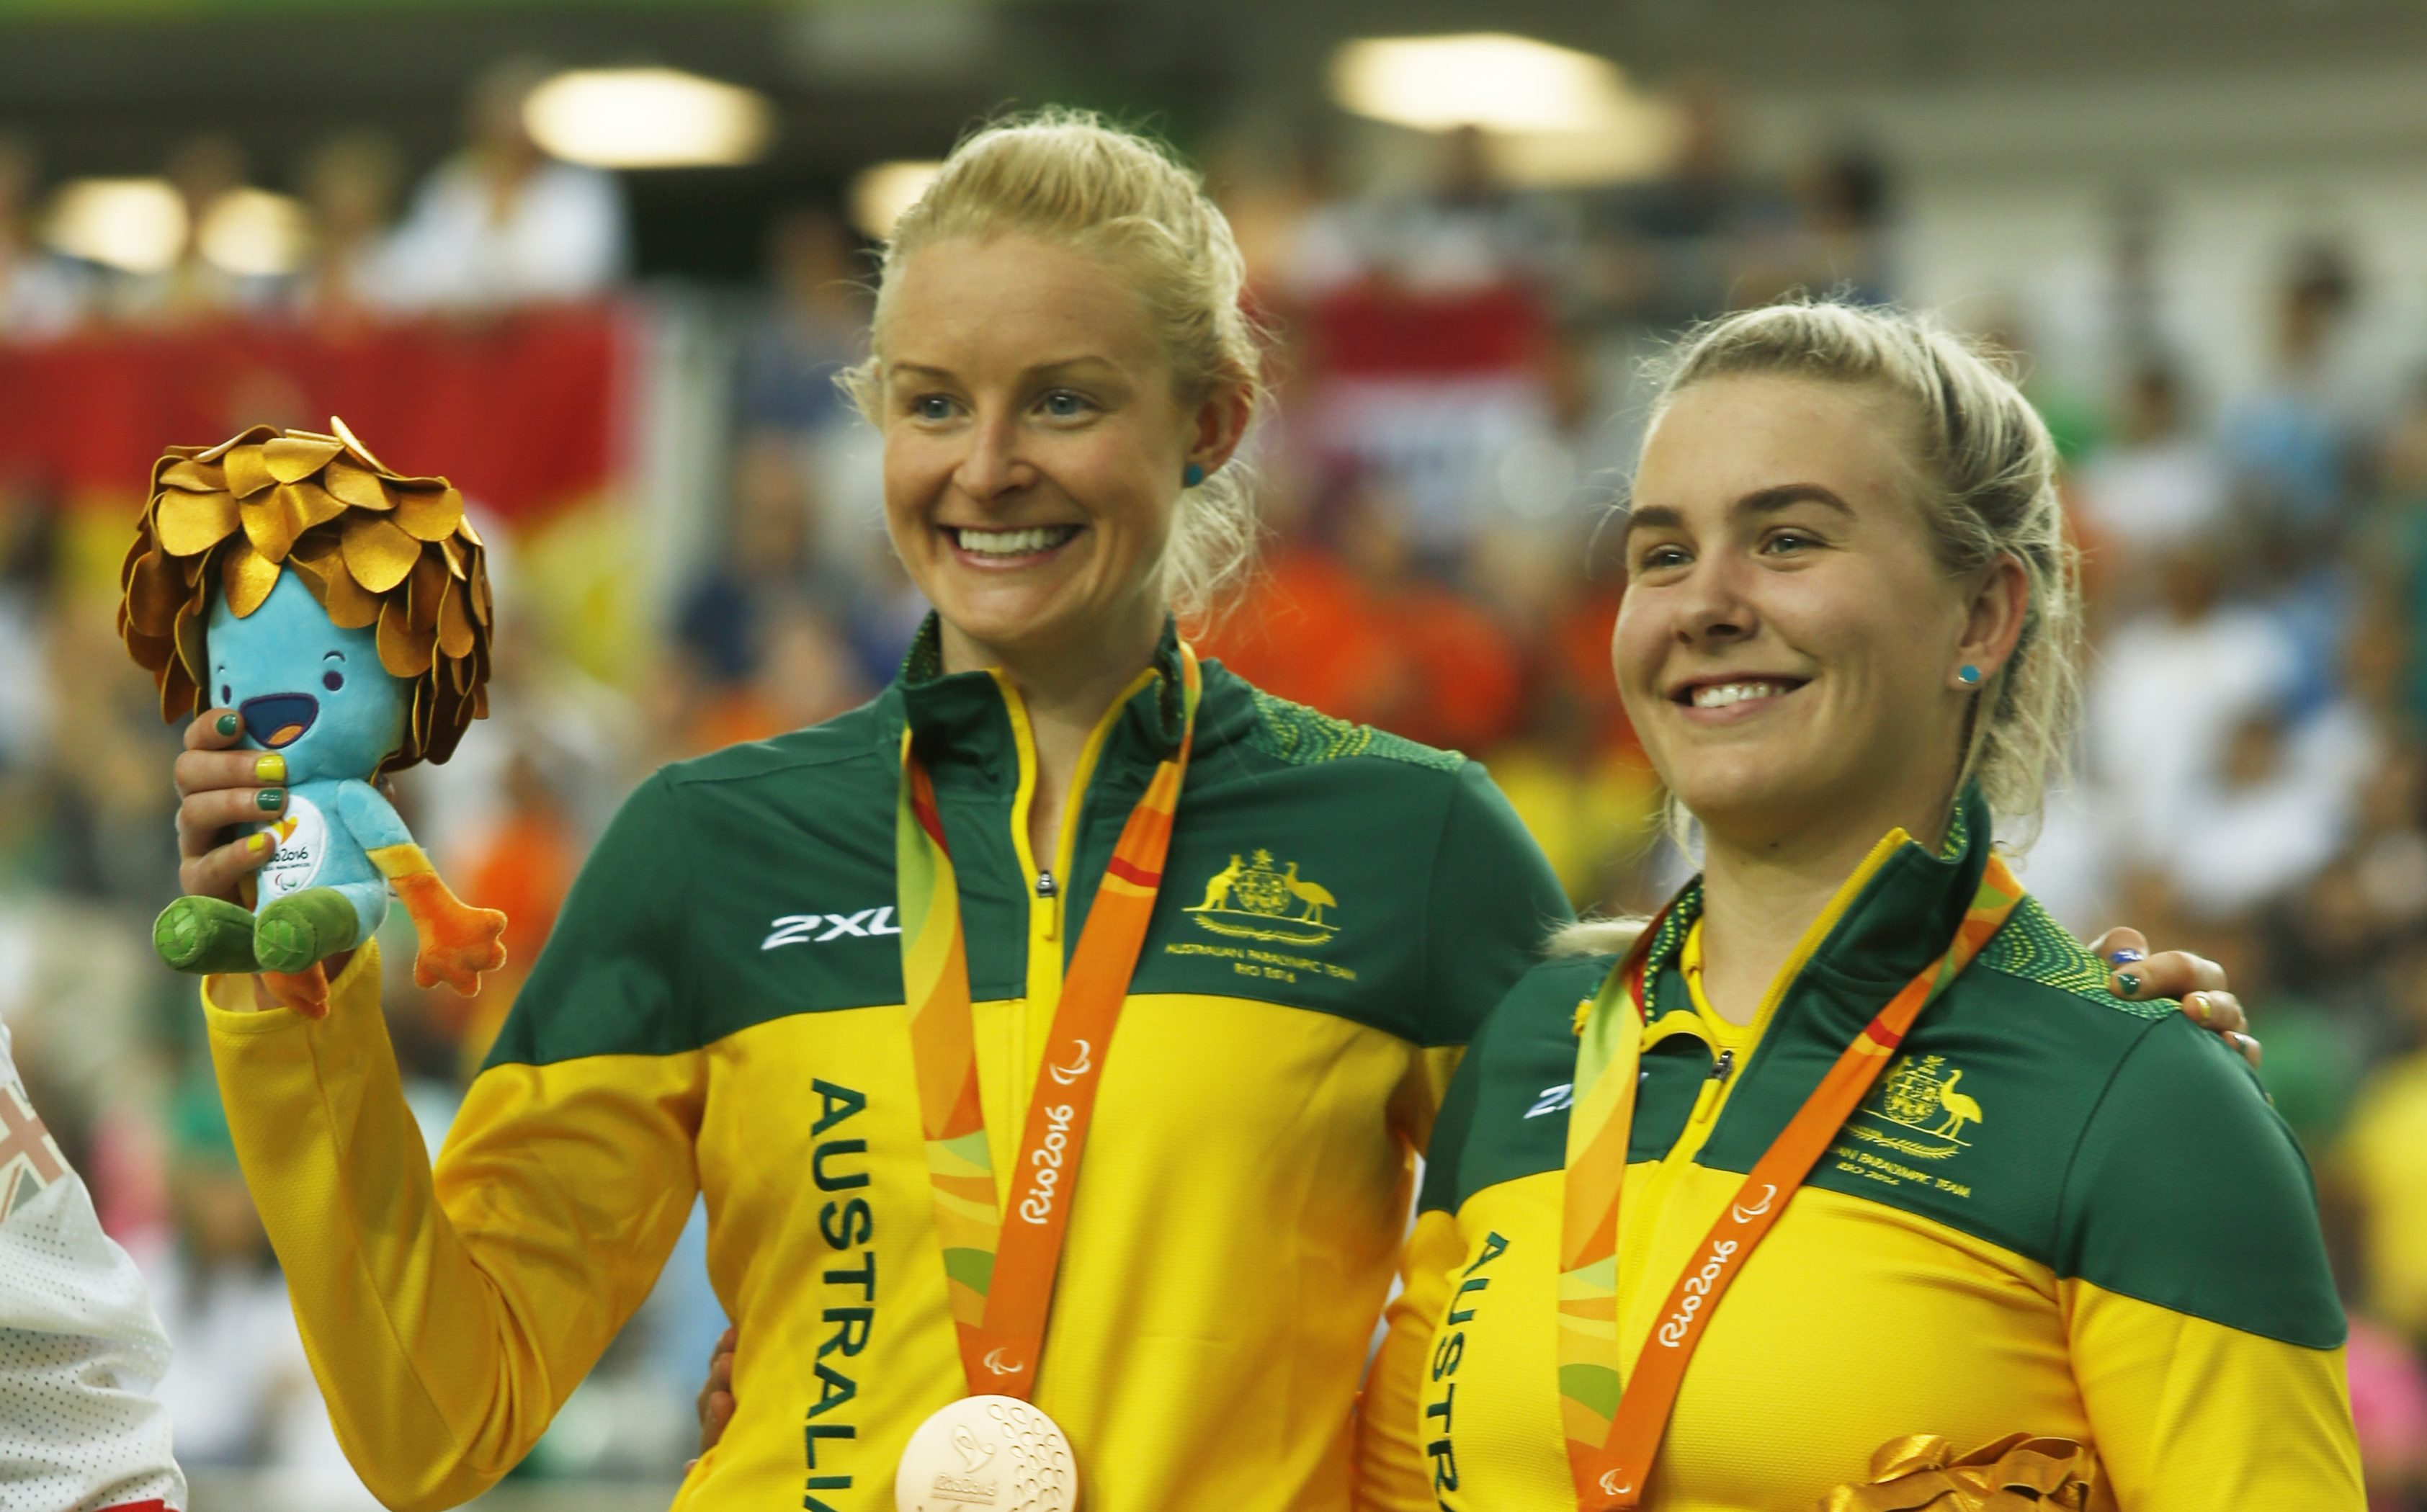 Gallagher and Janssen race for gold